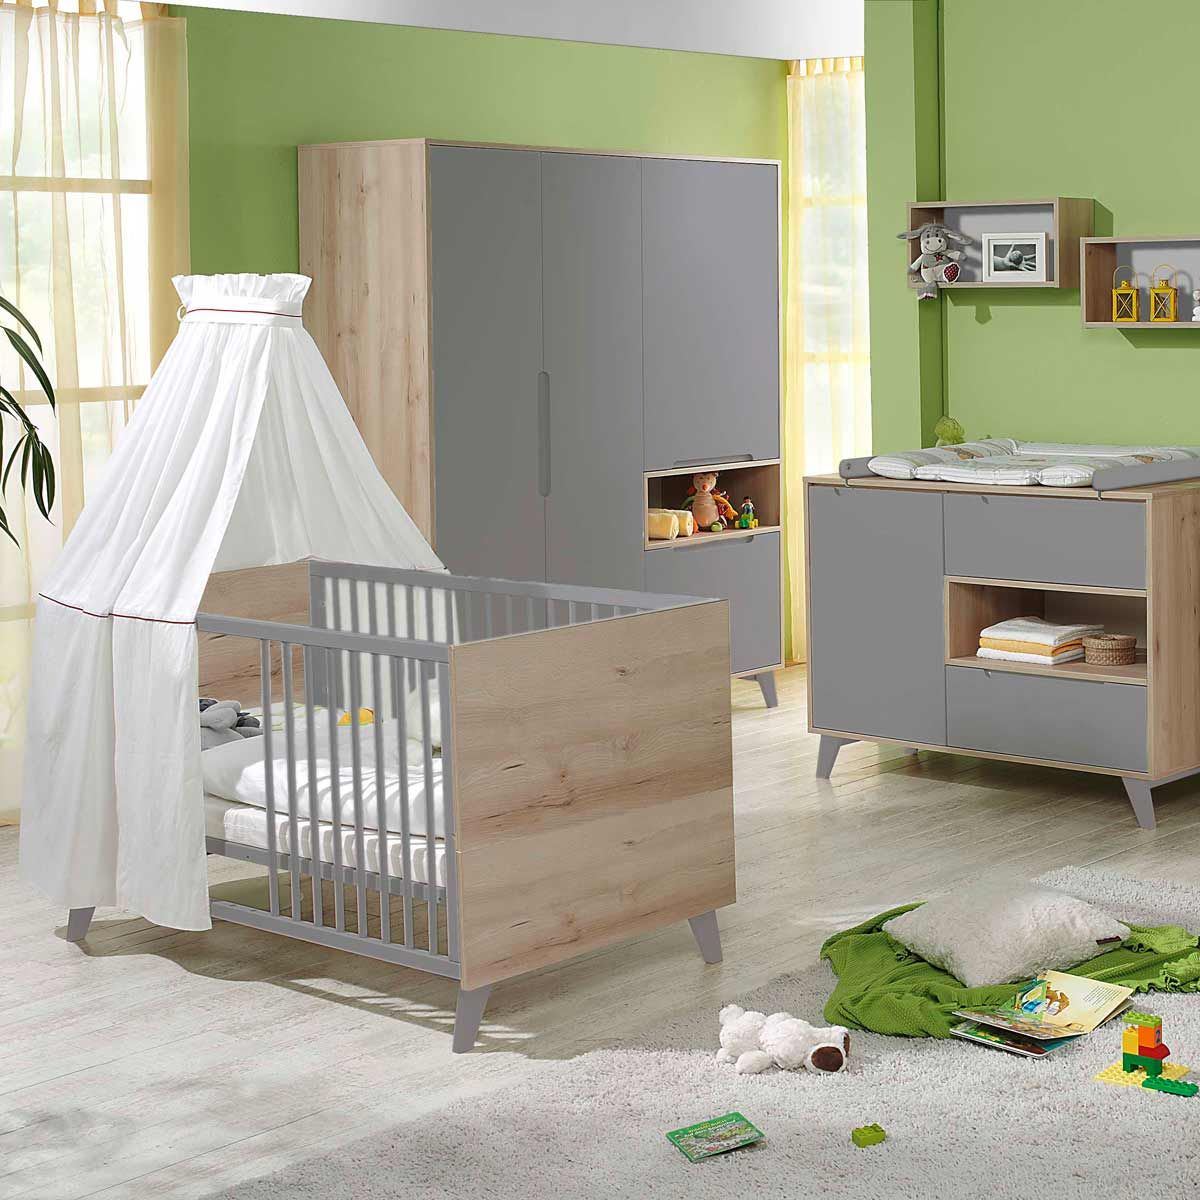 geuther malte kinderzimmer g nstig online kaufen. Black Bedroom Furniture Sets. Home Design Ideas